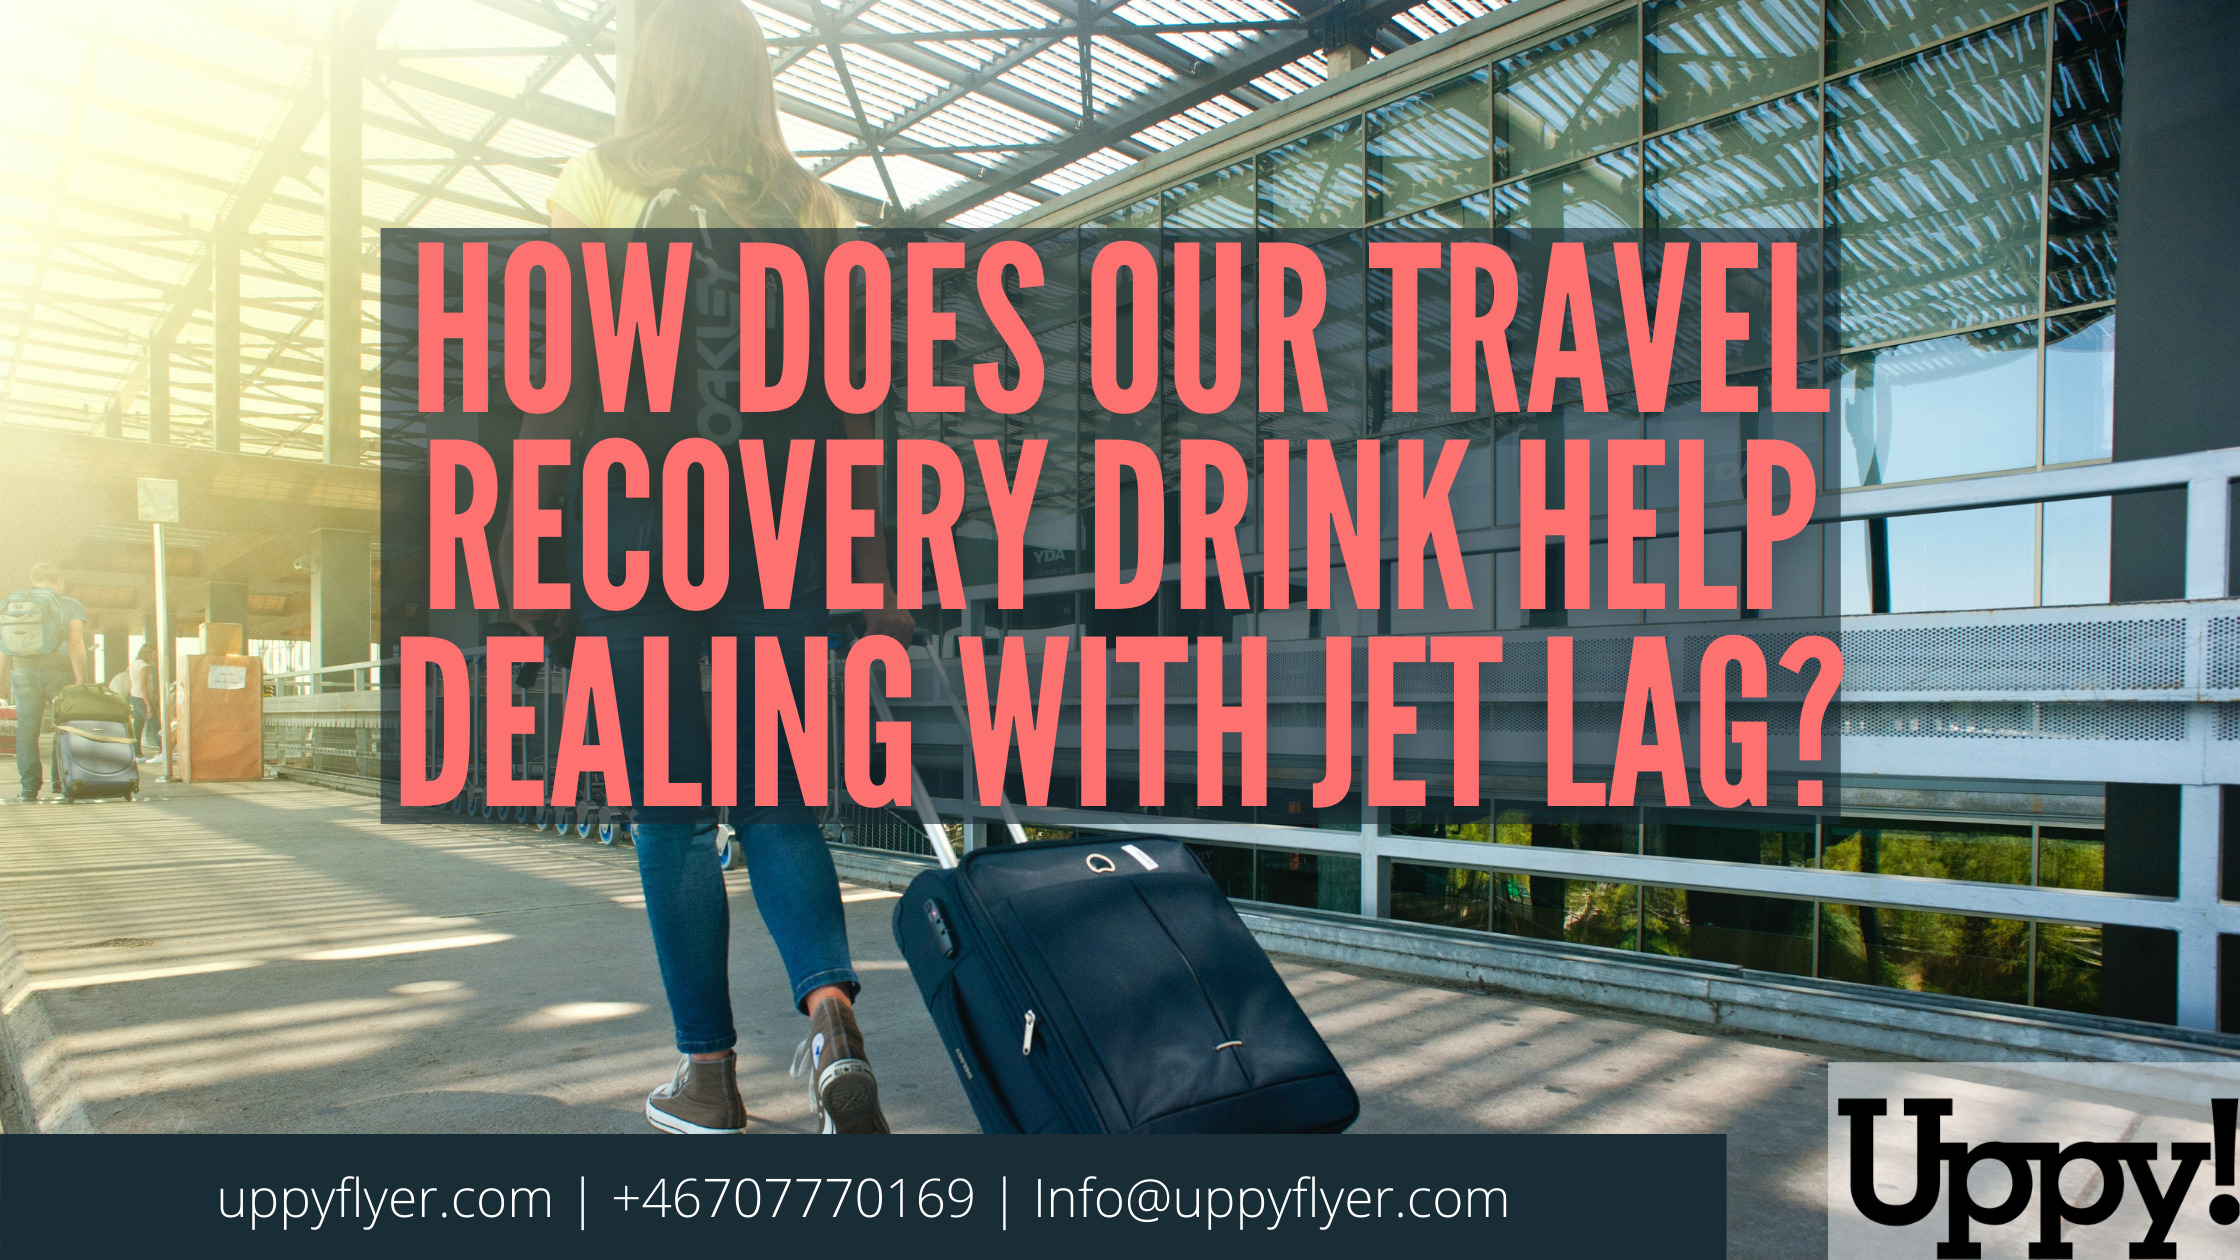 travel recovery drink